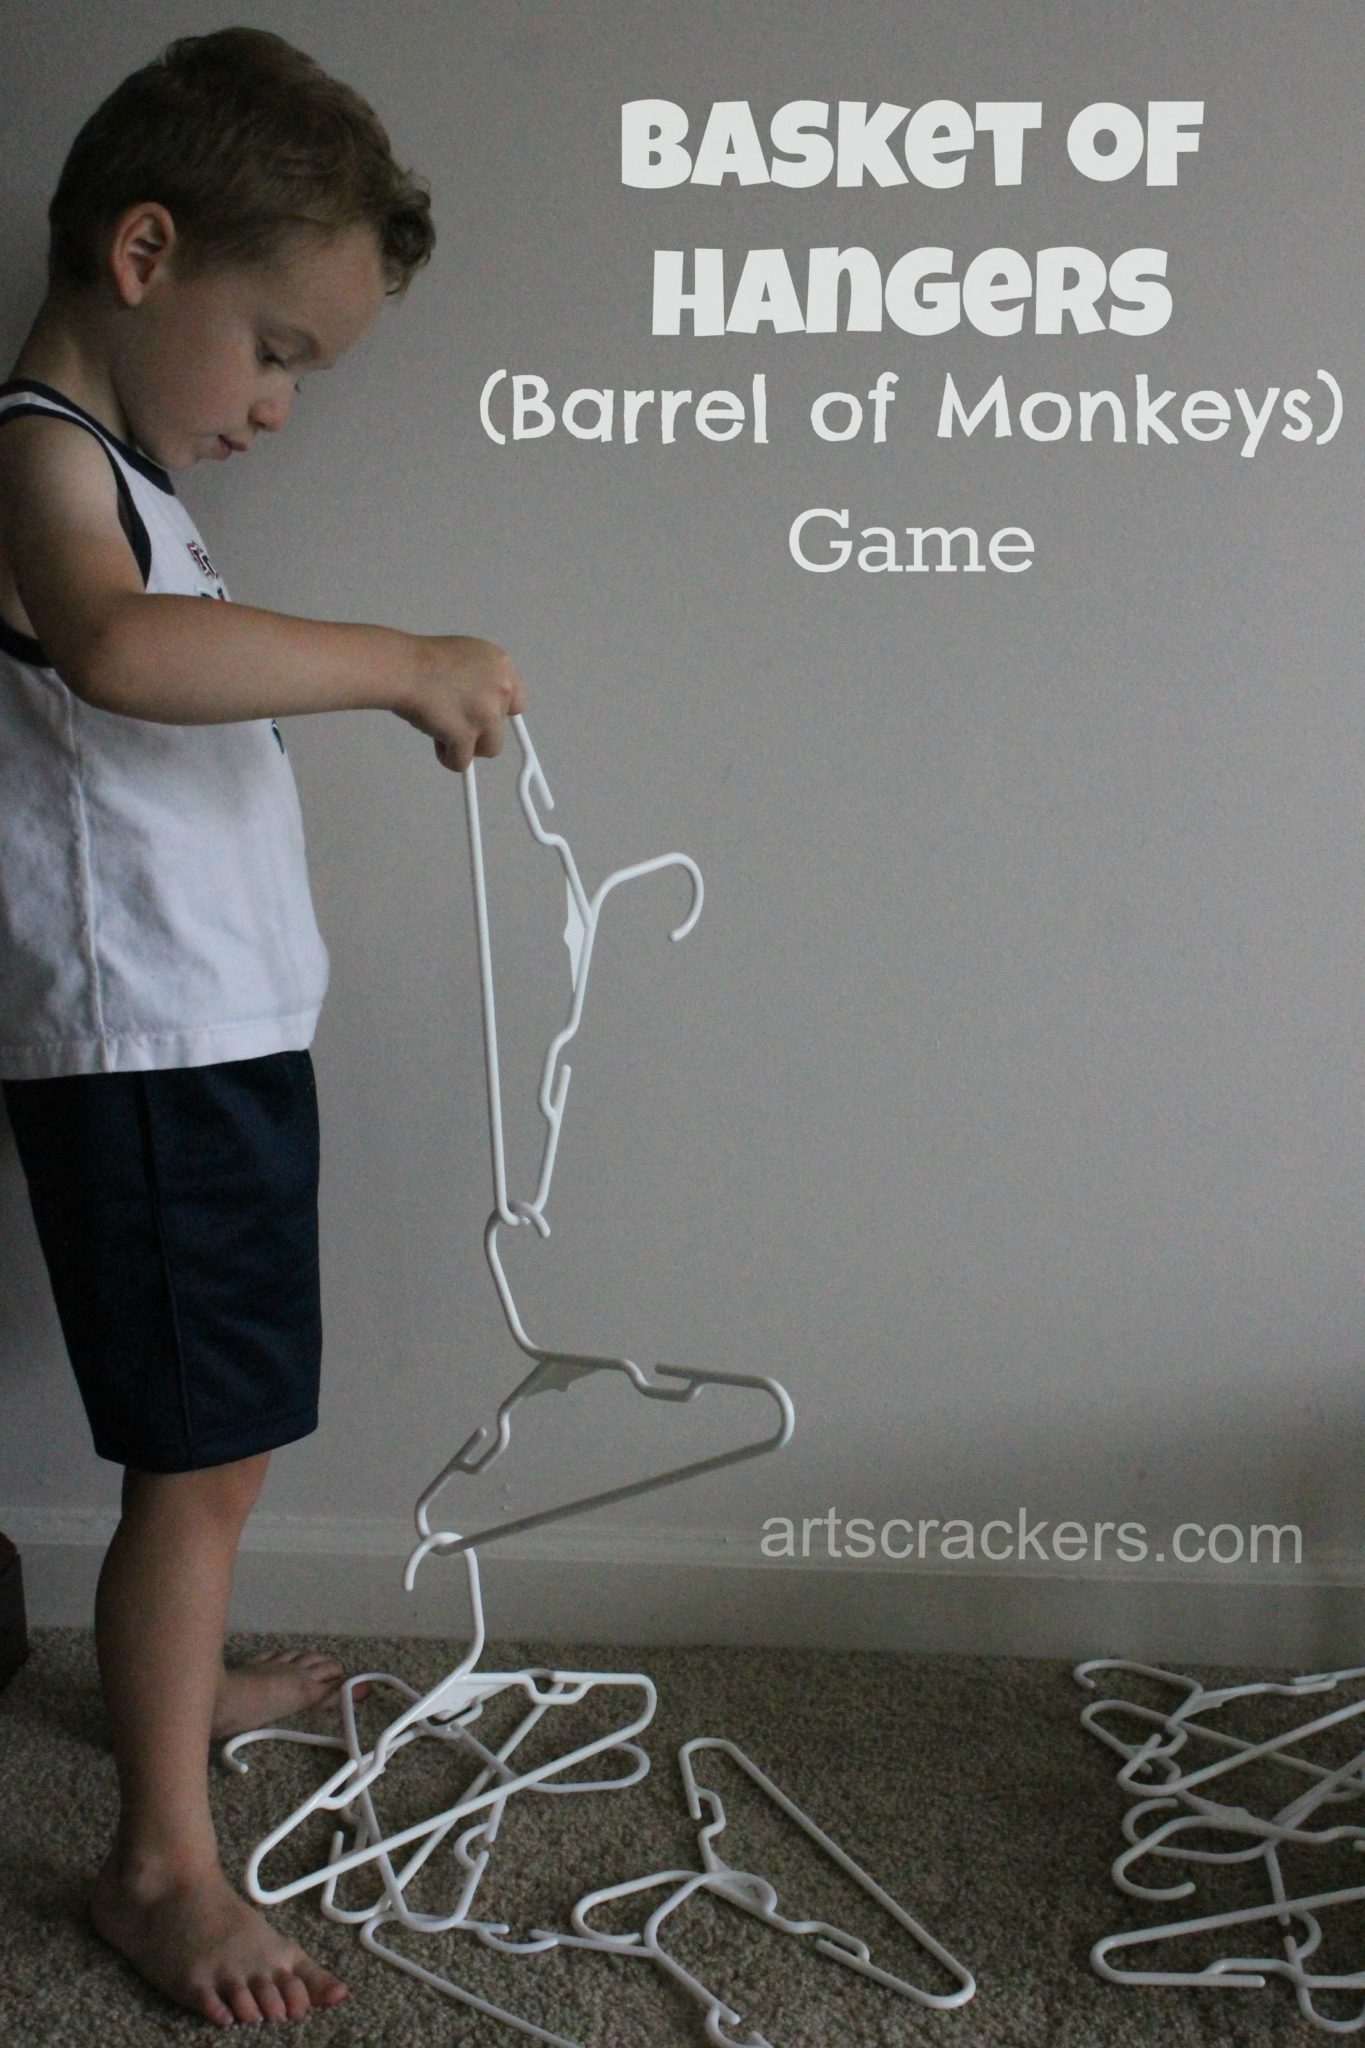 DIY Barrel of Monkeys Game Using Hangers